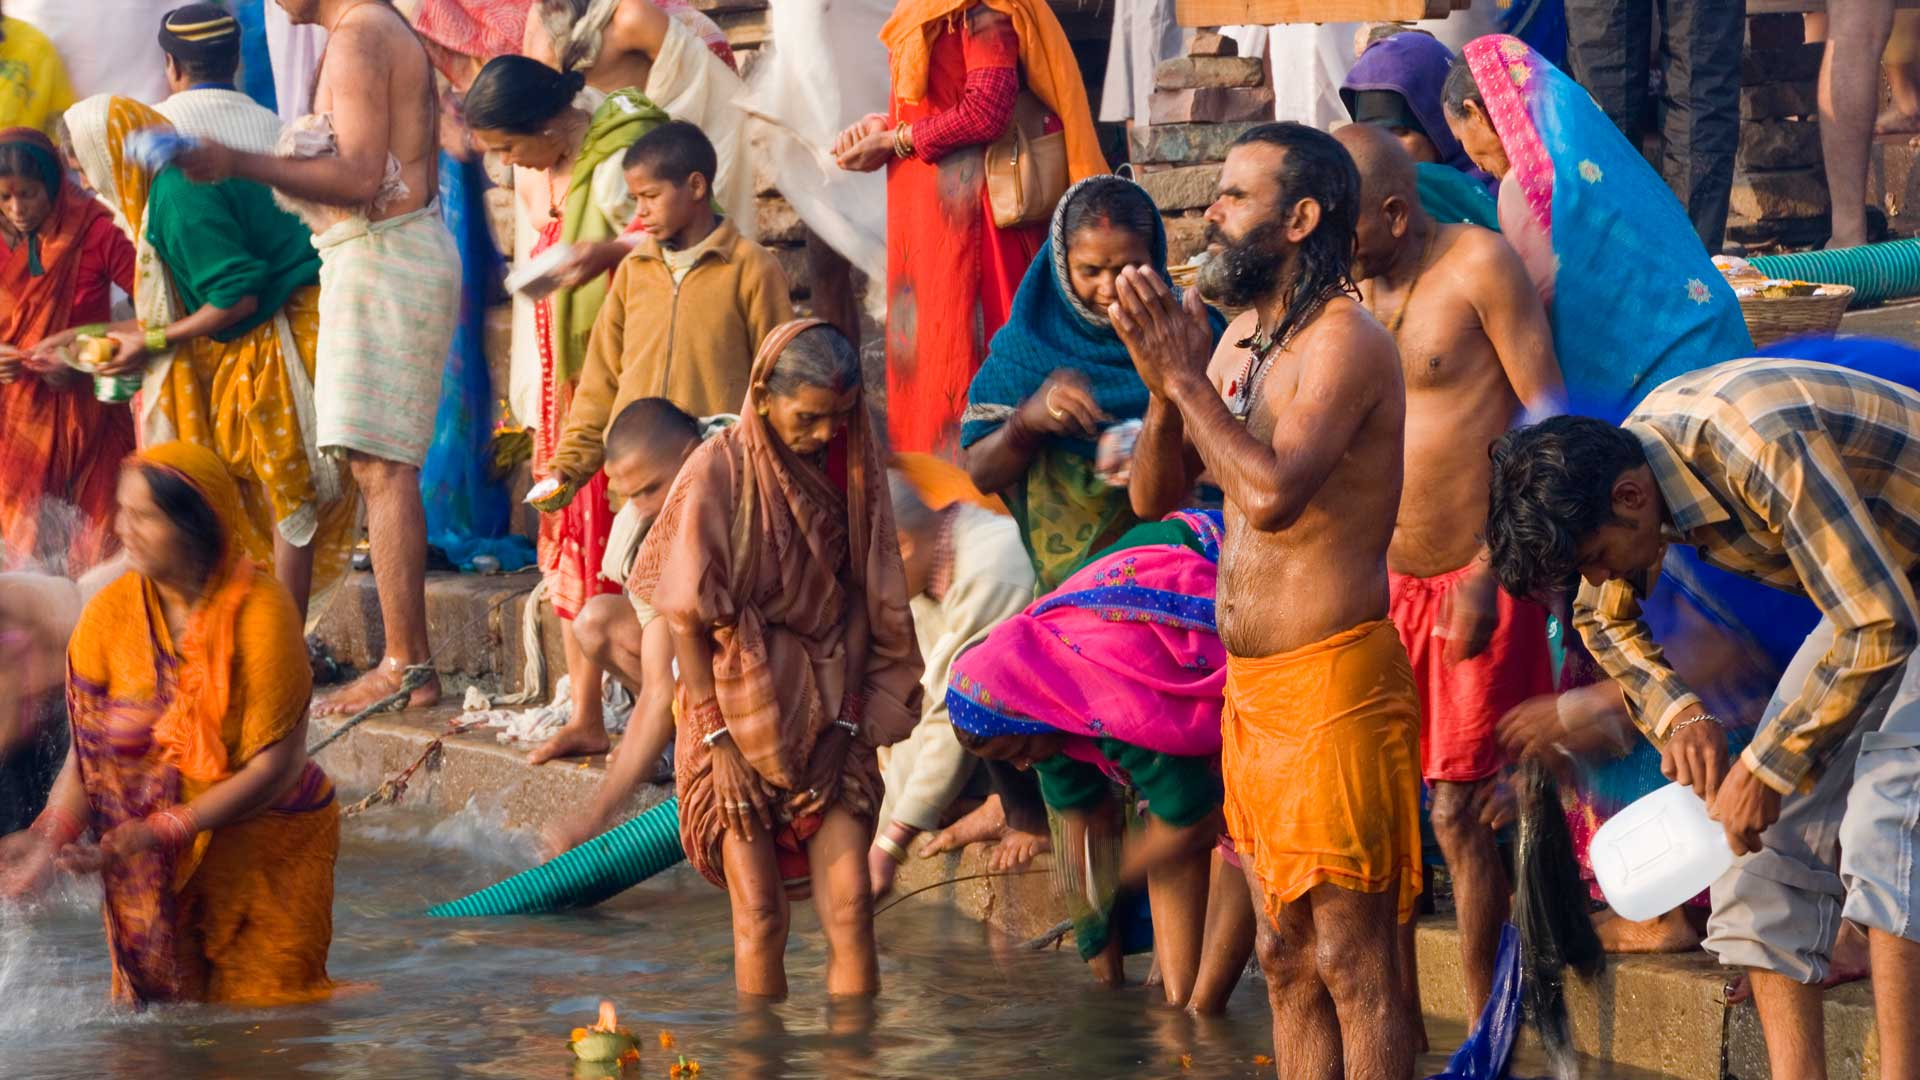 Pilgrims bathing in the holy Ganges River in Varanasi, India with GeoEx